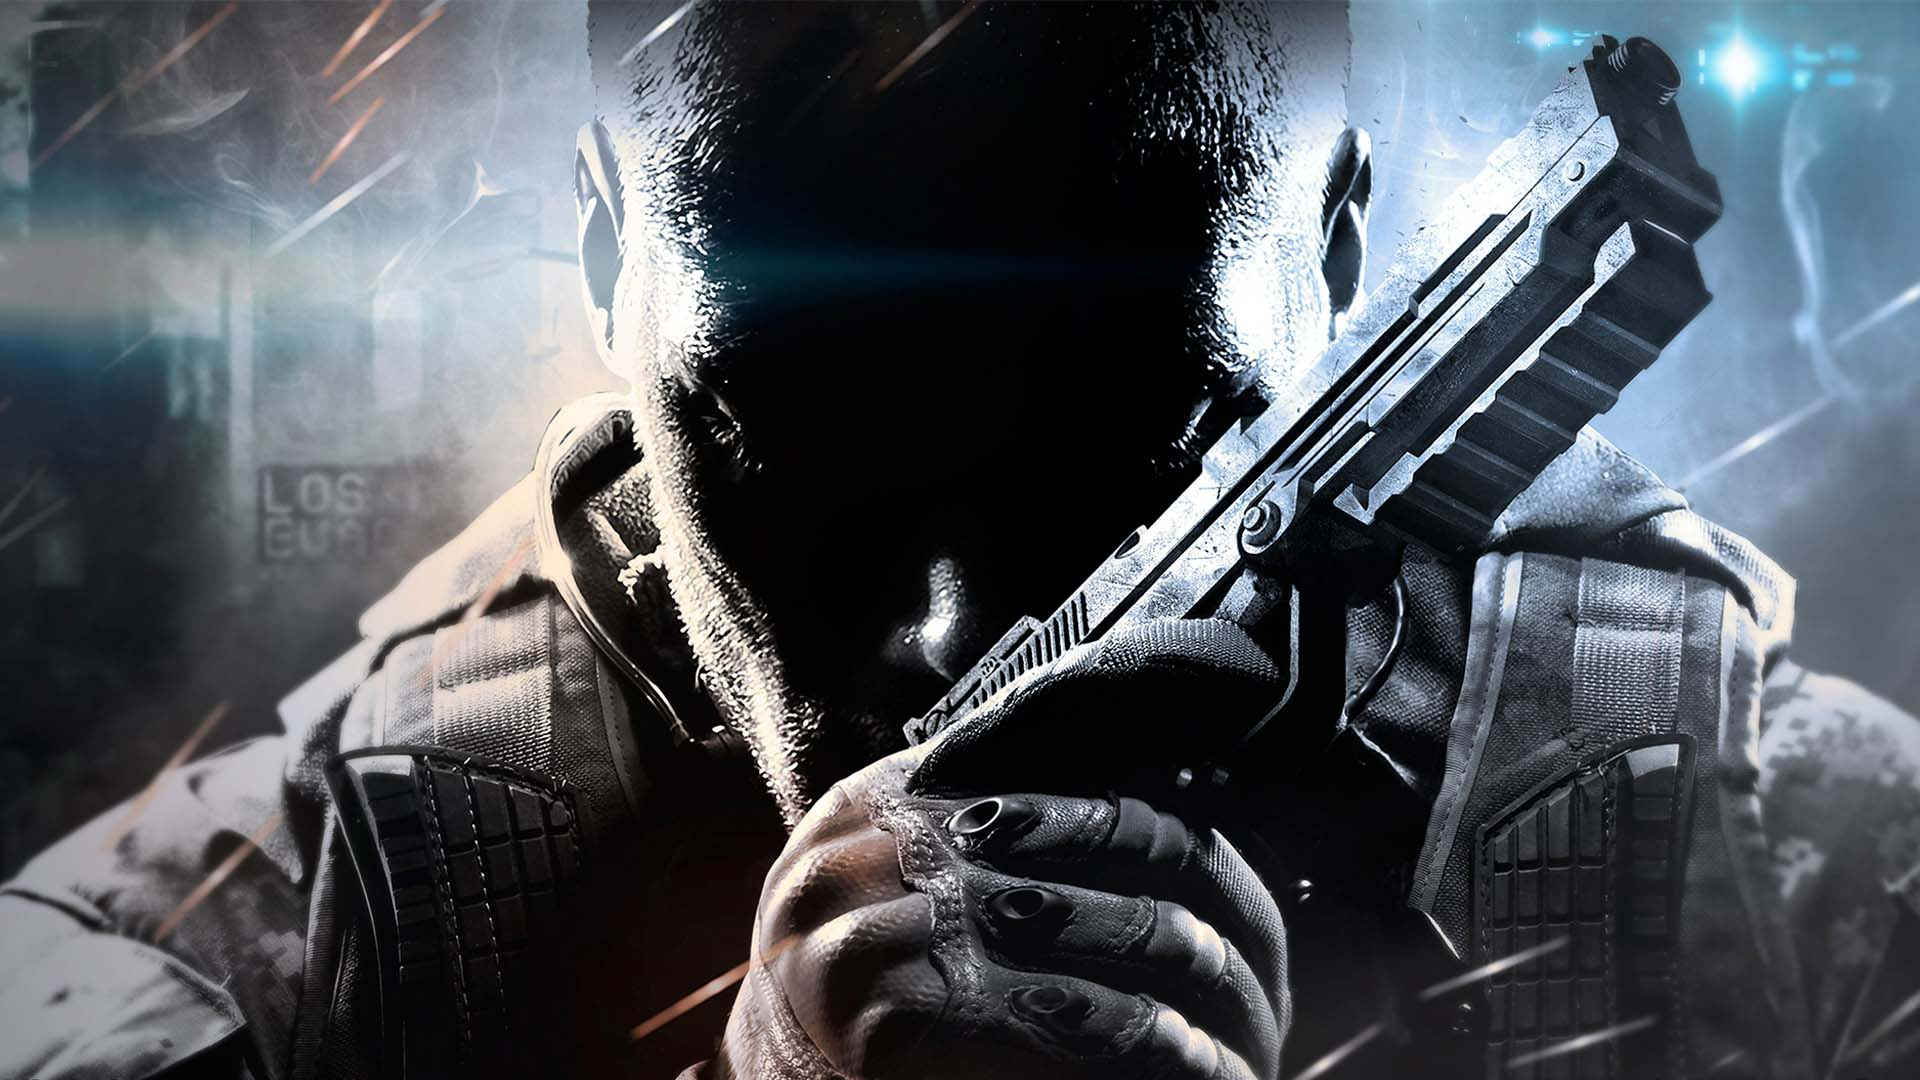 Call Of Duty Full HD Game Wallpaper #9 | TopGa #776 HD Game .